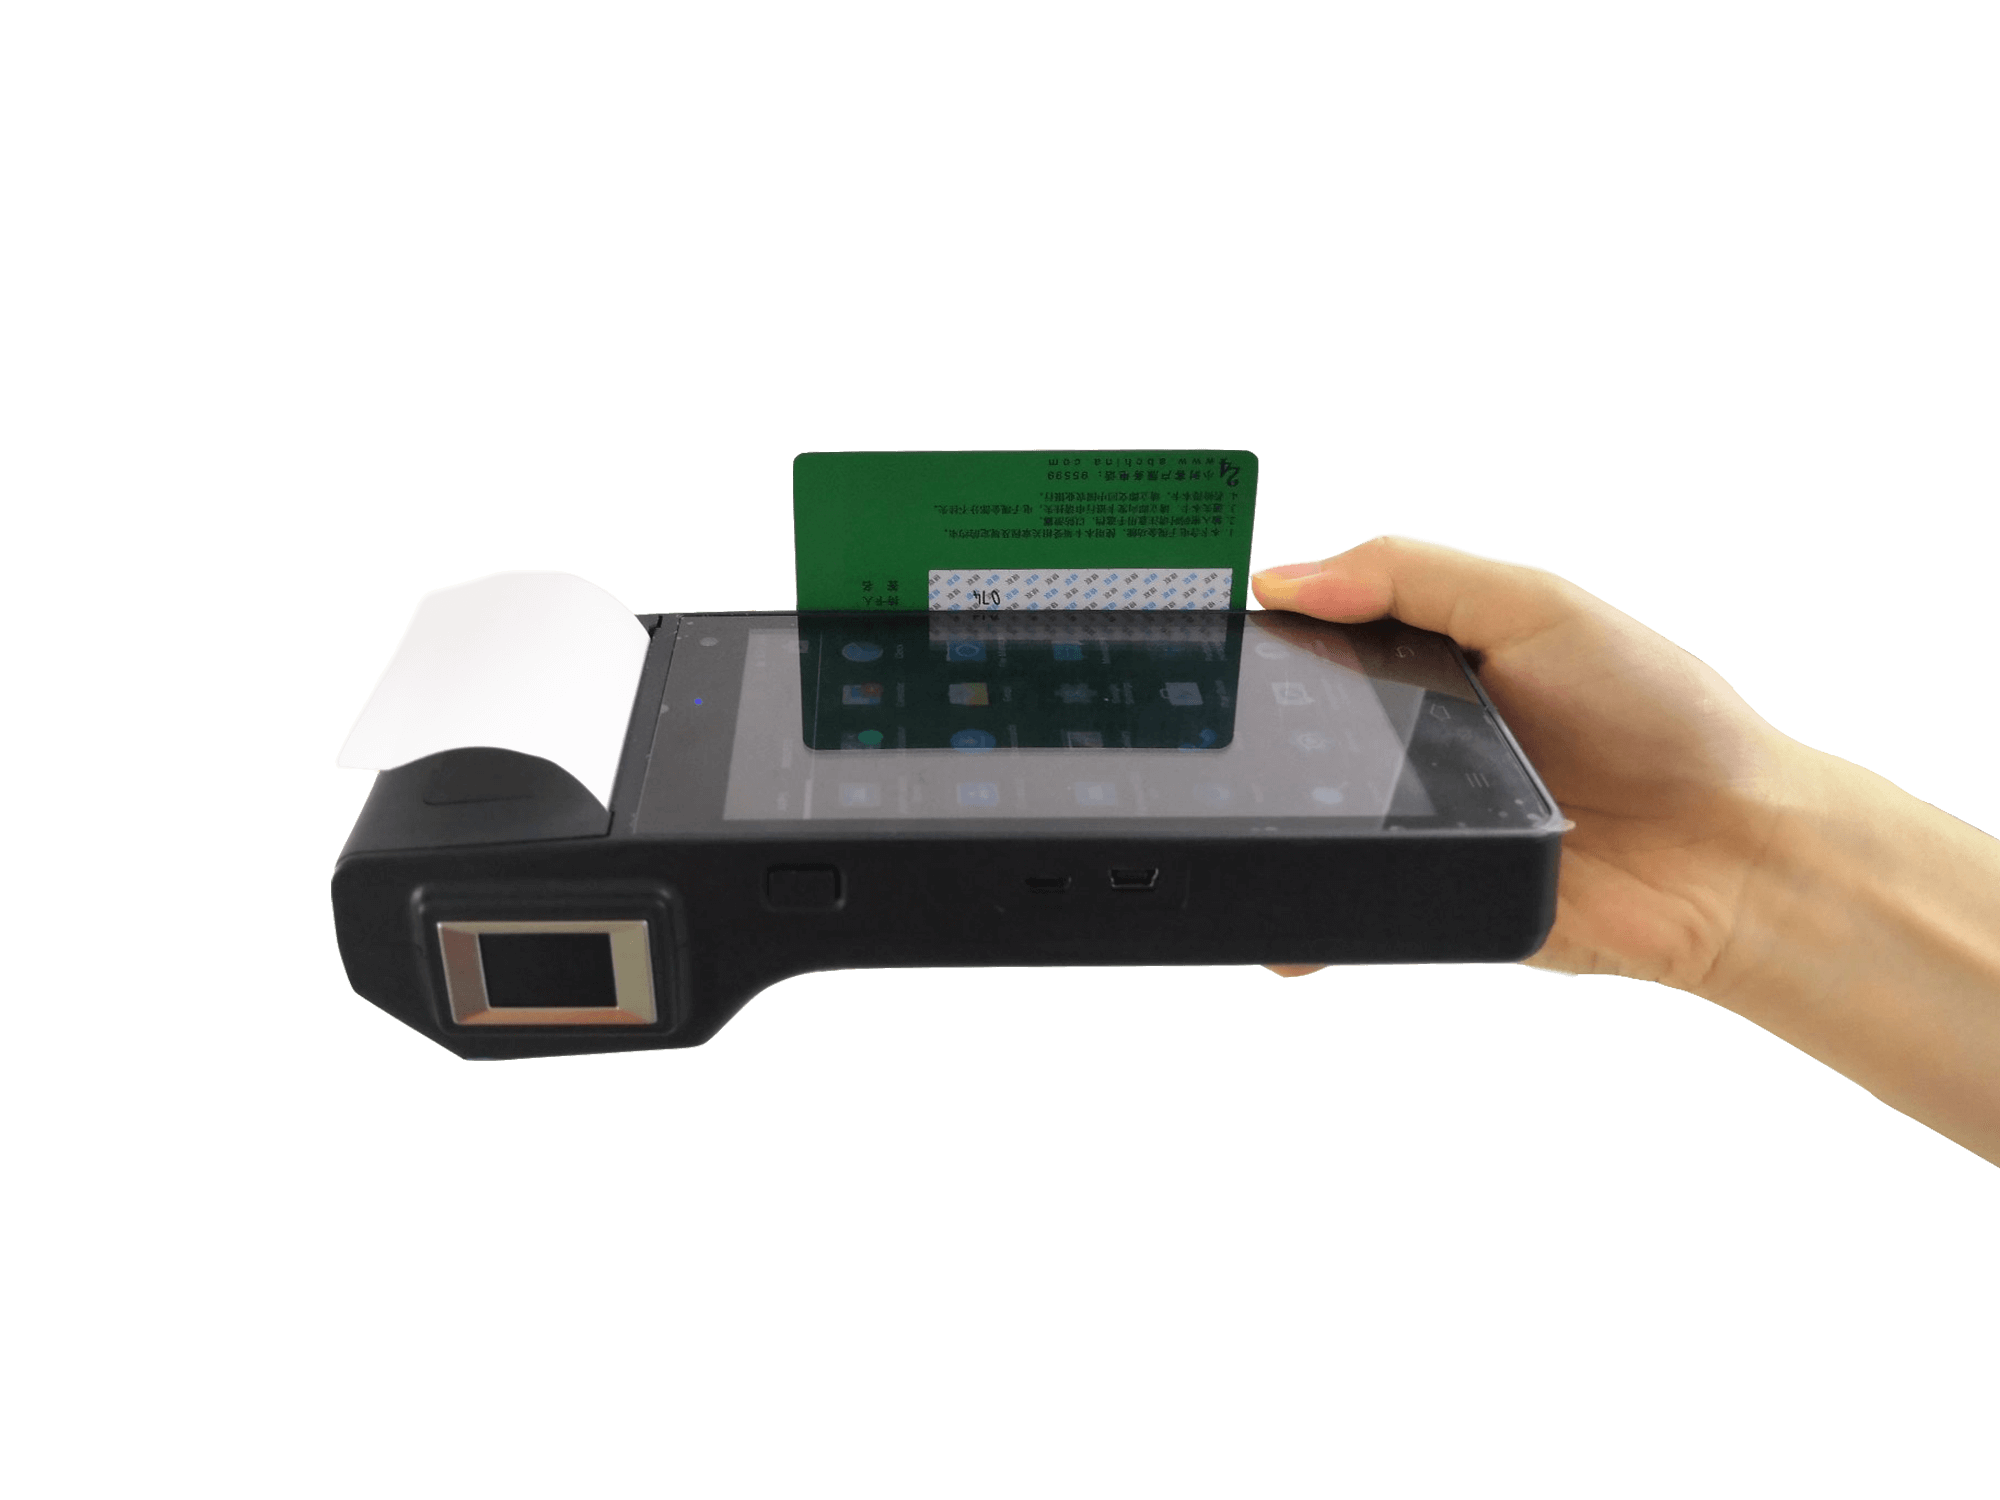 HFSecurity HP605 EMV Fingerprint Pos Terminal